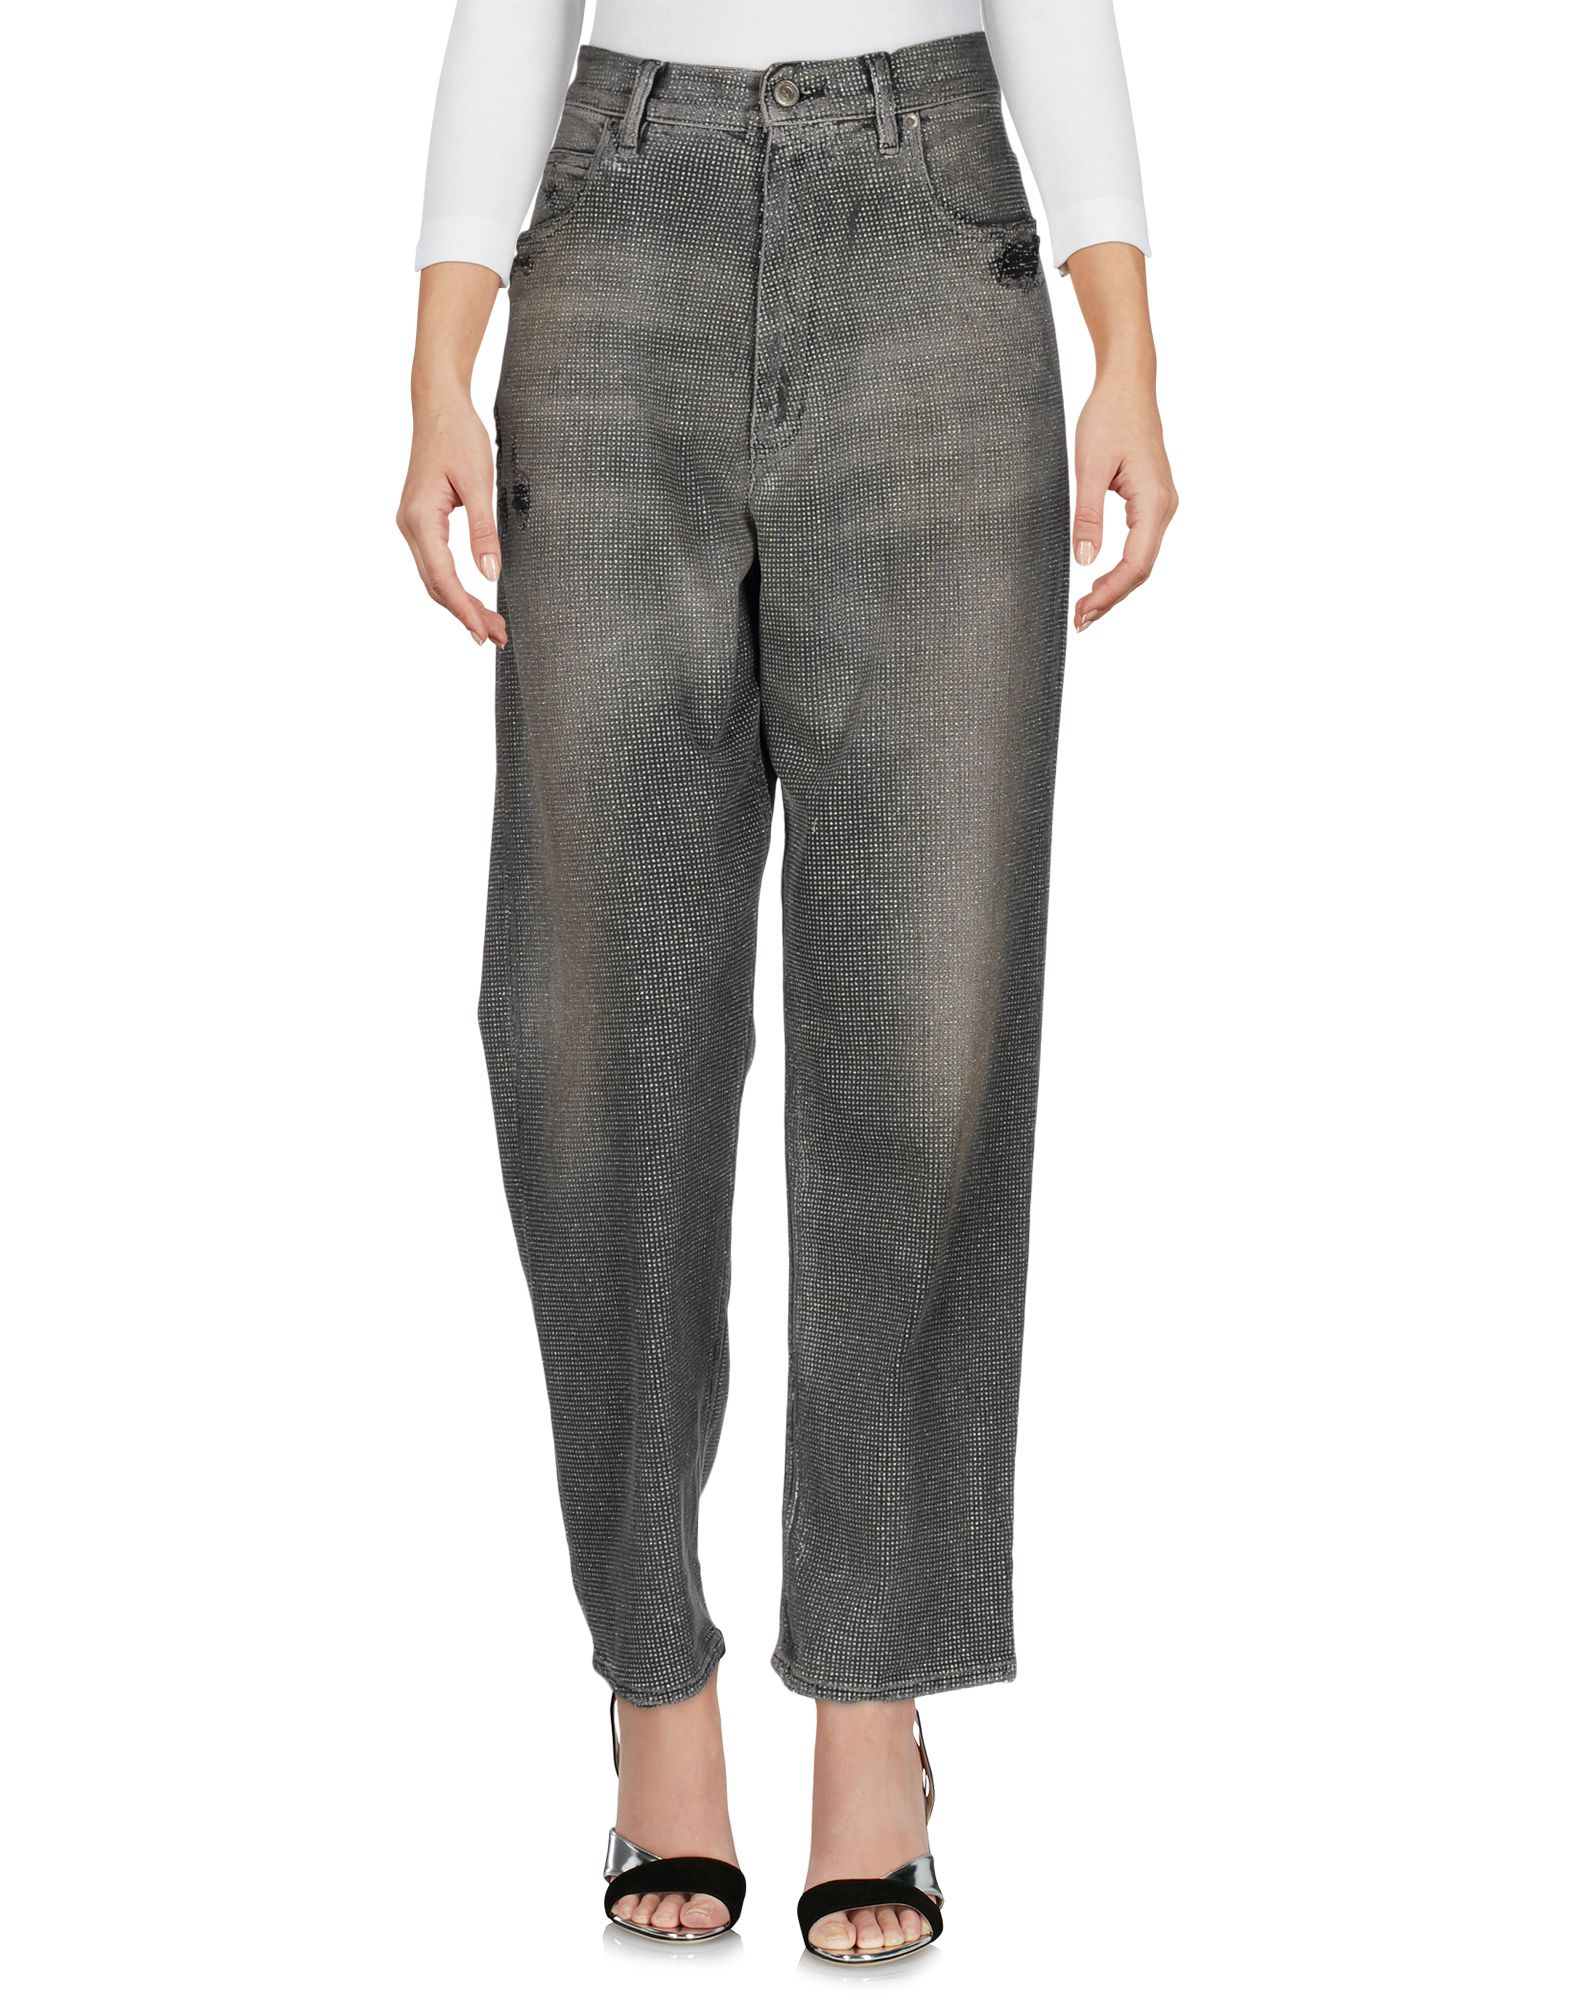 Pantaloni Jeans Golden Goose Deluxe Brand Donna - Acquista online su jdE1xHIH5